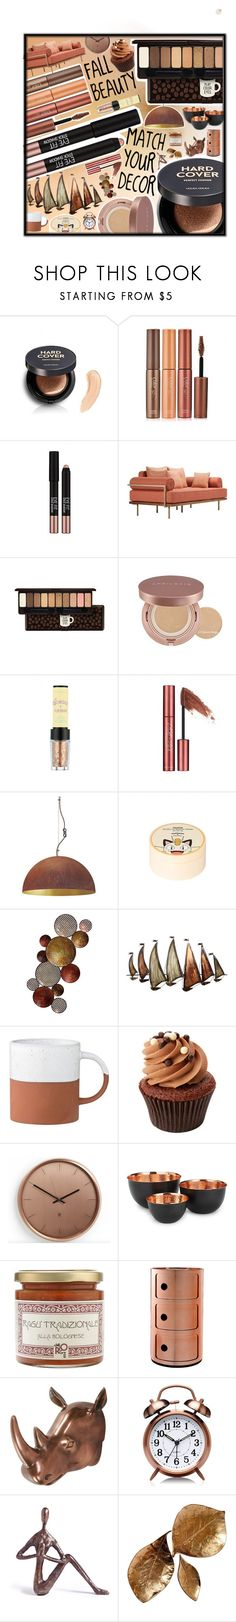 """Fall BEAUTY: Match your DECOR!"" by beanpod ❤ liked on Polyvore featuring beauty, Holika Holika, Etude House, Missha, Umbra, Home Essentials, Kartell, Moe's and Danya B"